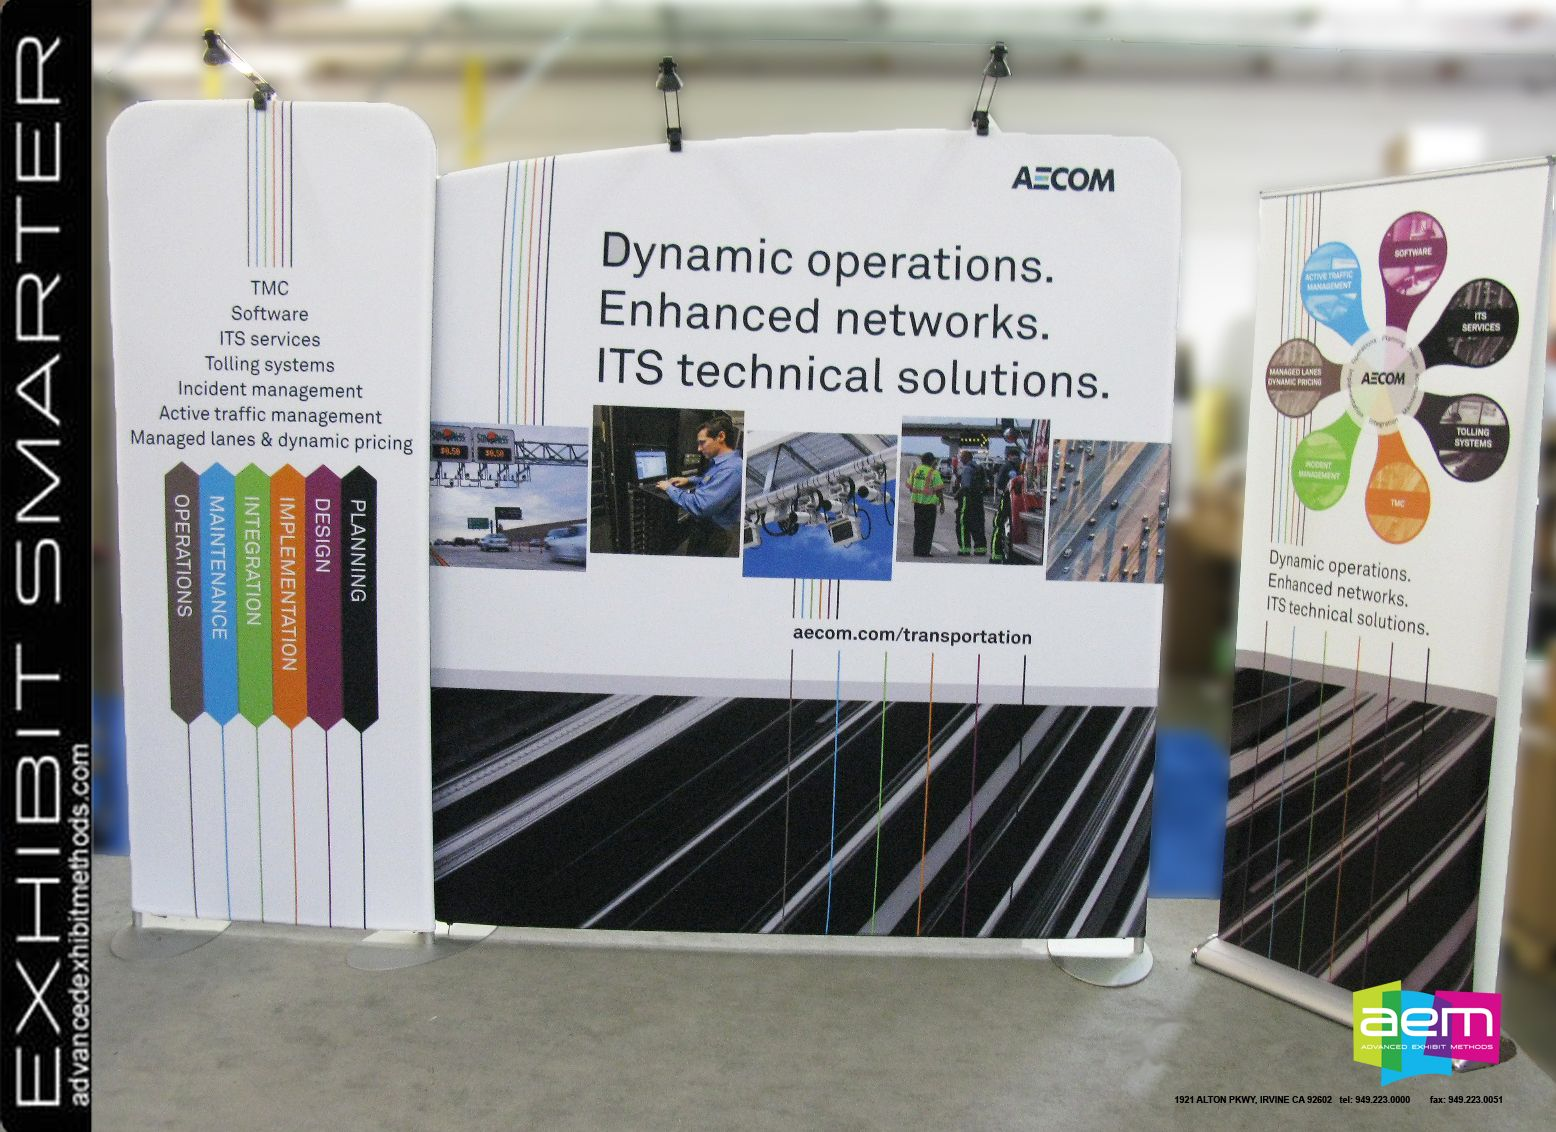 Large background graphic for the AECOM modular trade show booth 1556x1132